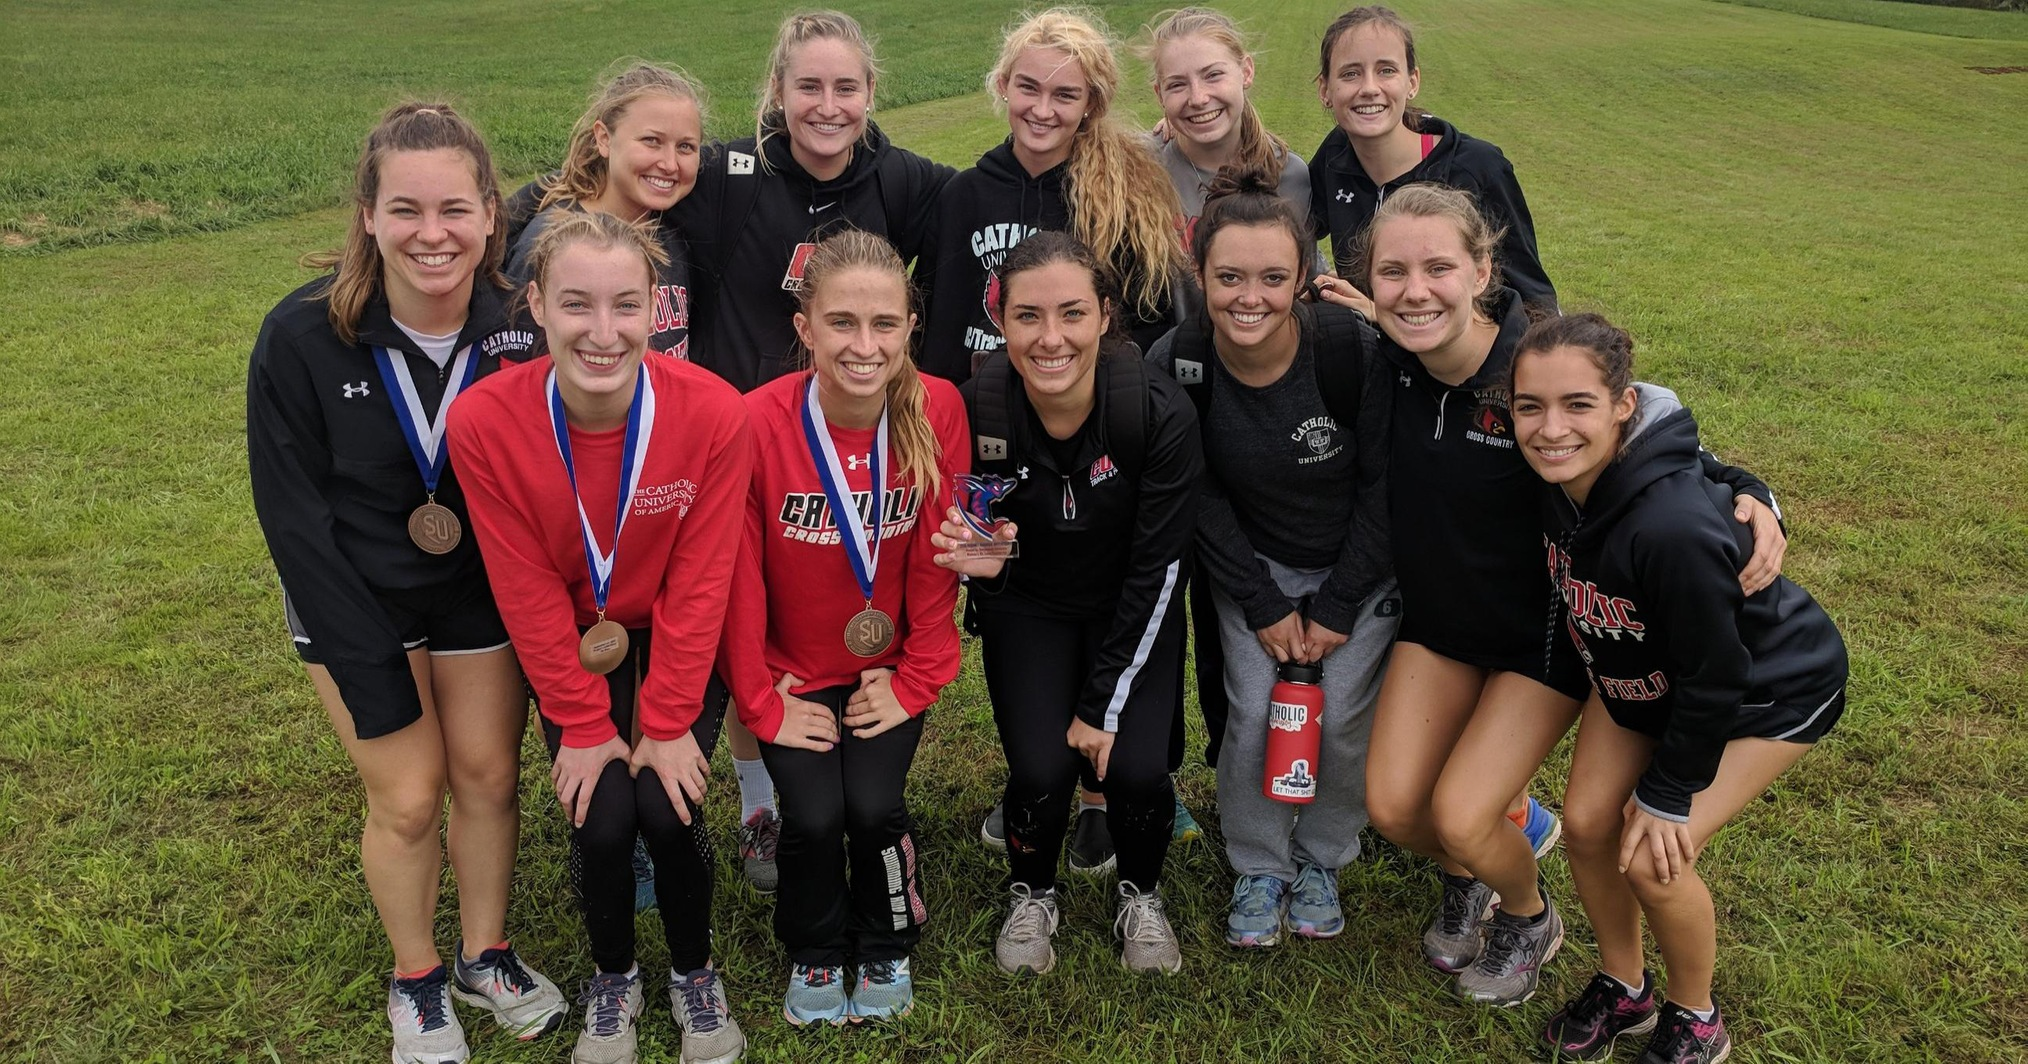 Cardinals Place Second at the Hornet Harrier Invite